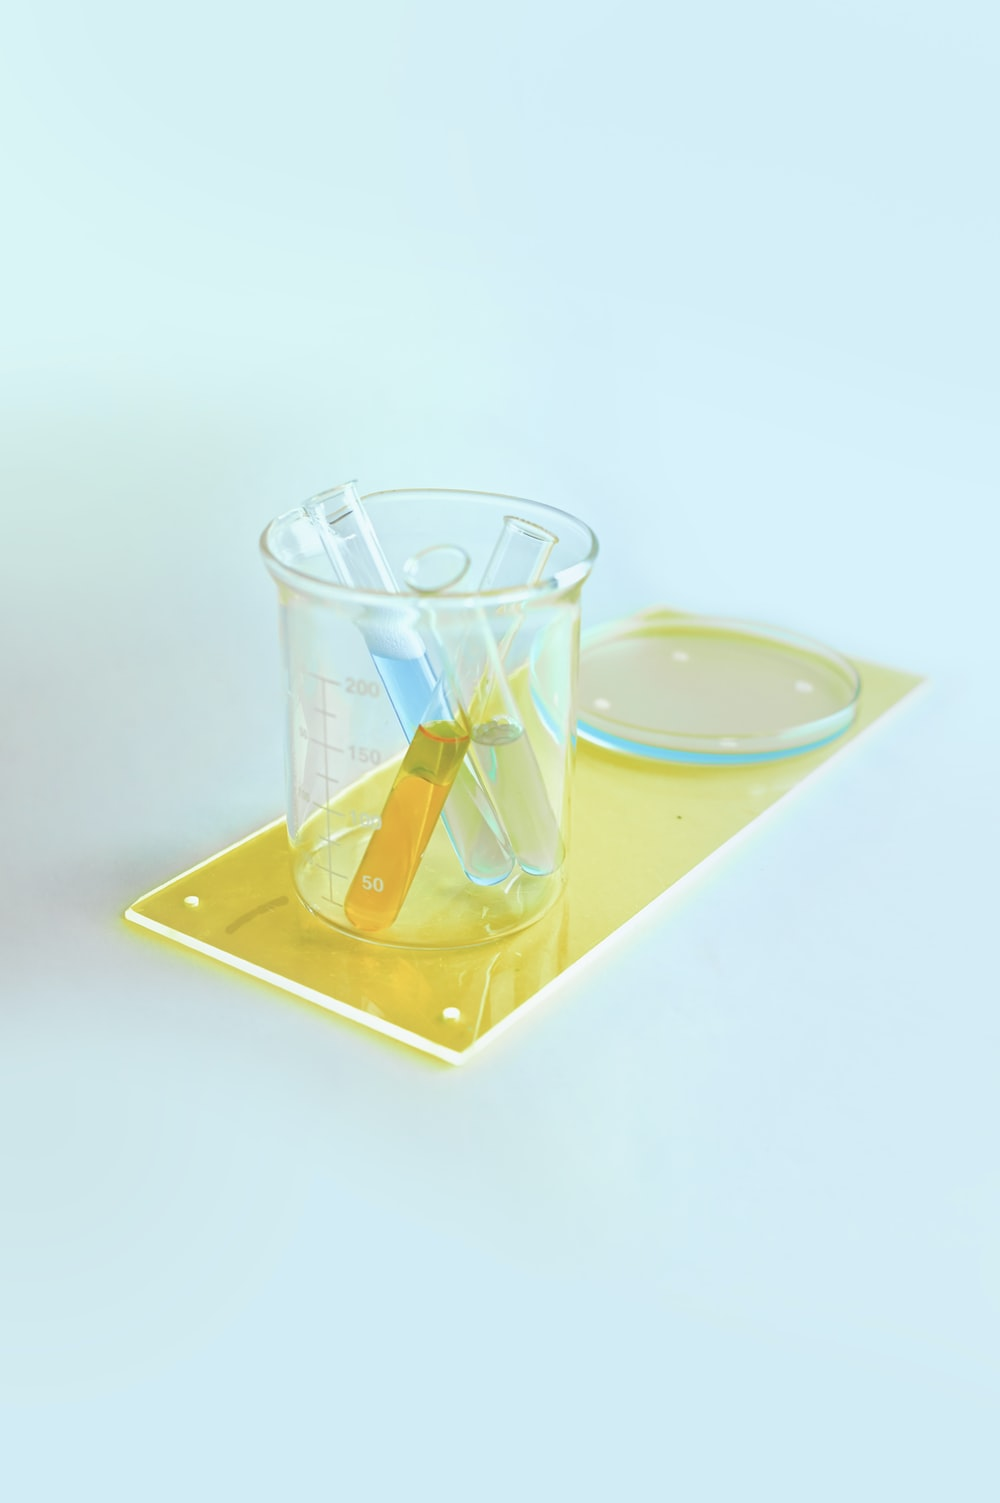 clear drinking glass on blue and white coaster